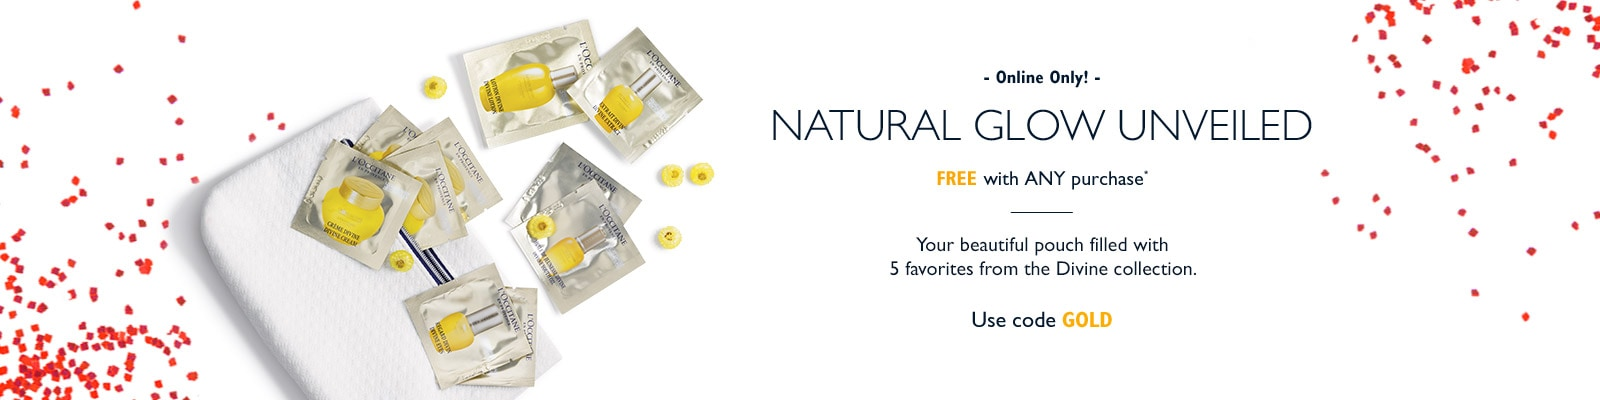 Receive a free 6-piece bonus gift with your L'Occitane purchase